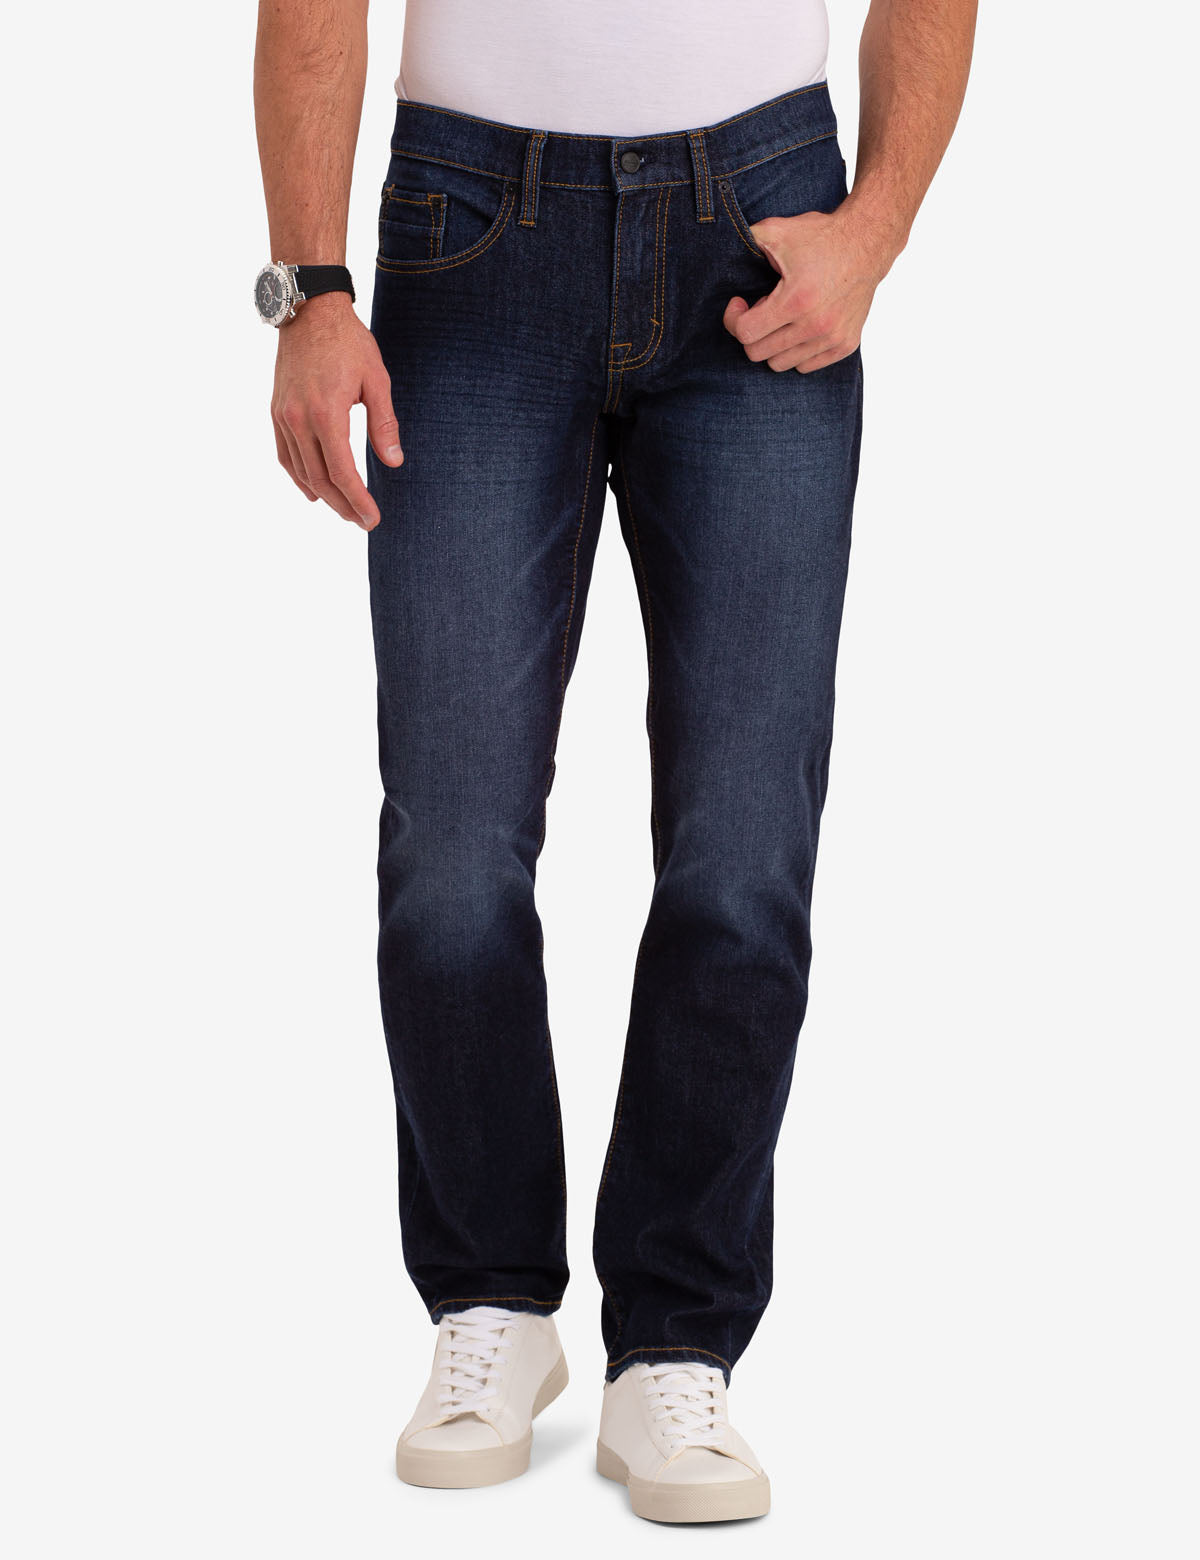 US Polo Association SLIM STRAIGHT JEANS